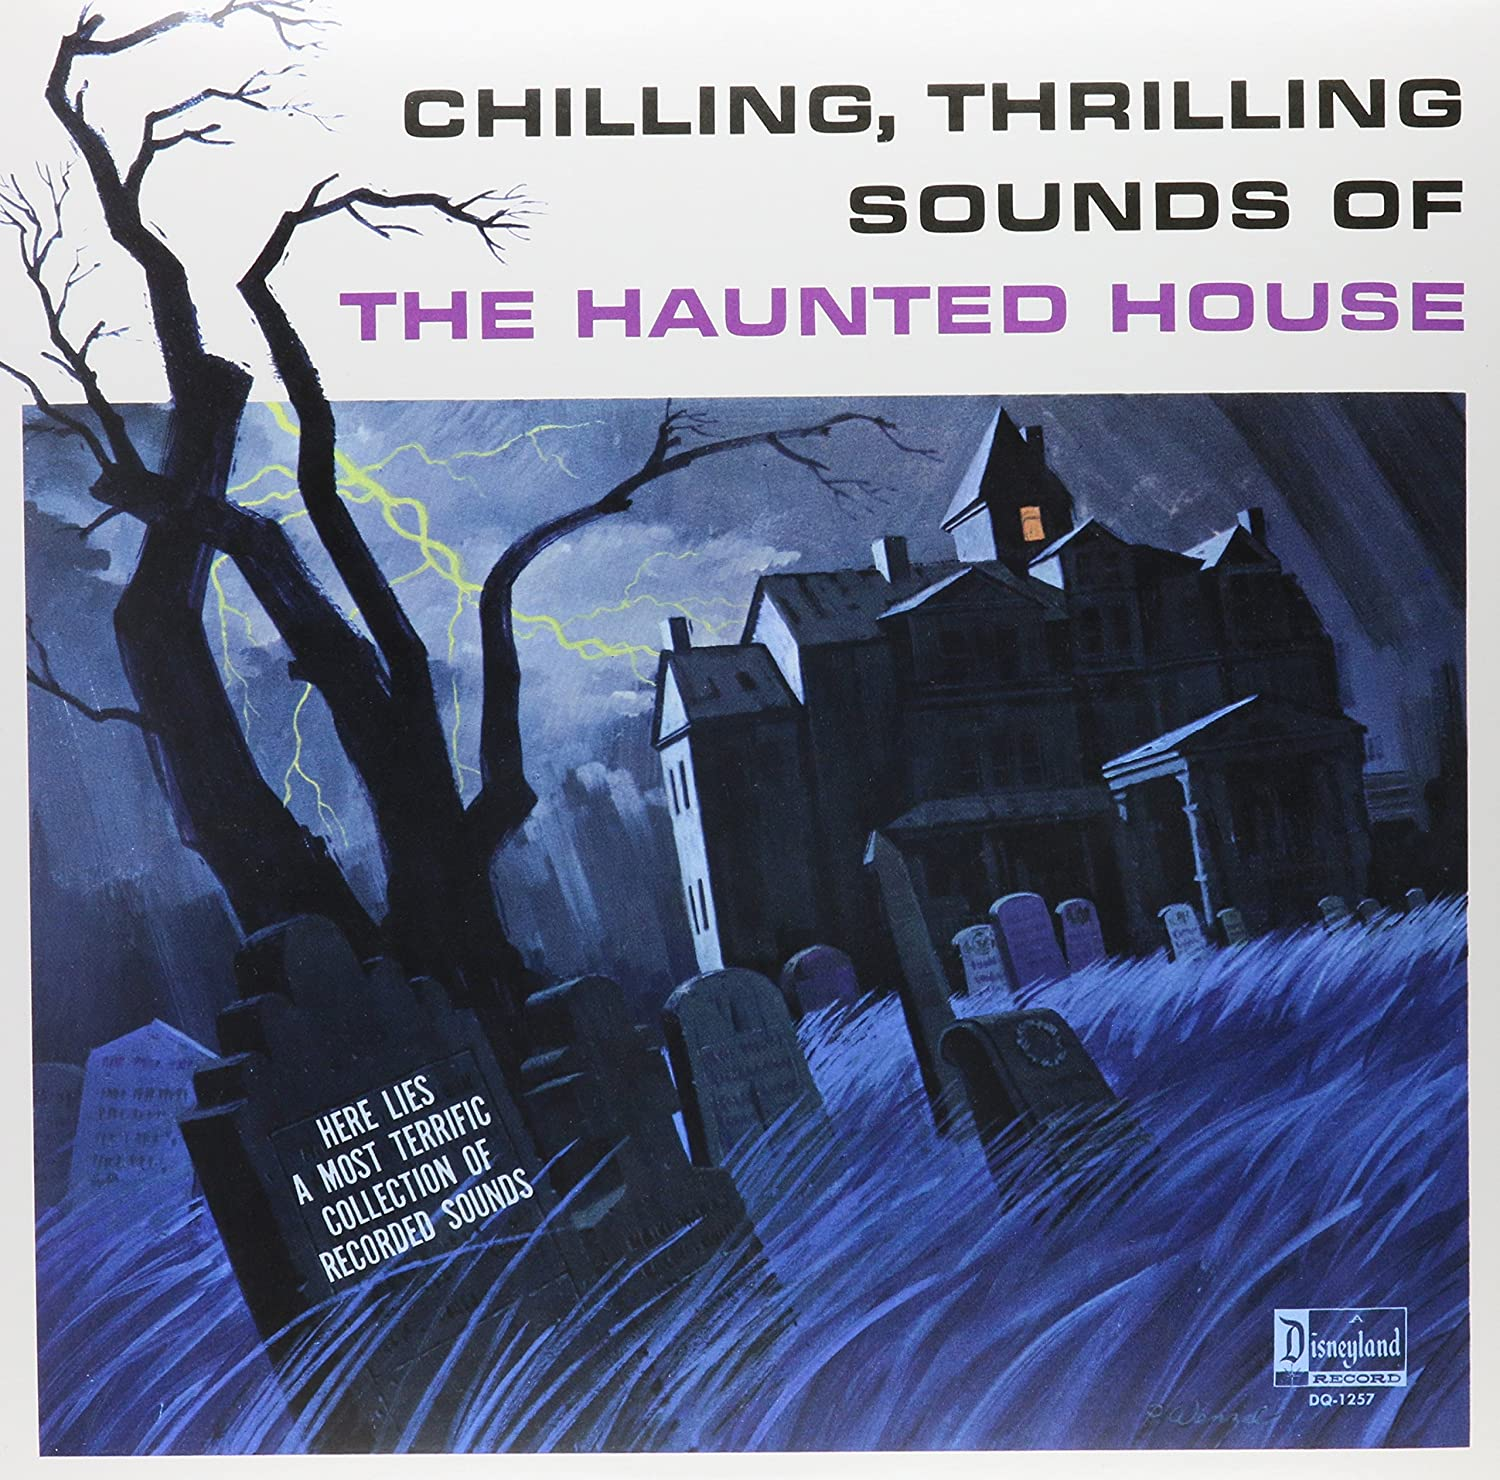 Album Art for Chilling, Thrilling Sounds Of The Haunted House by Various Artists